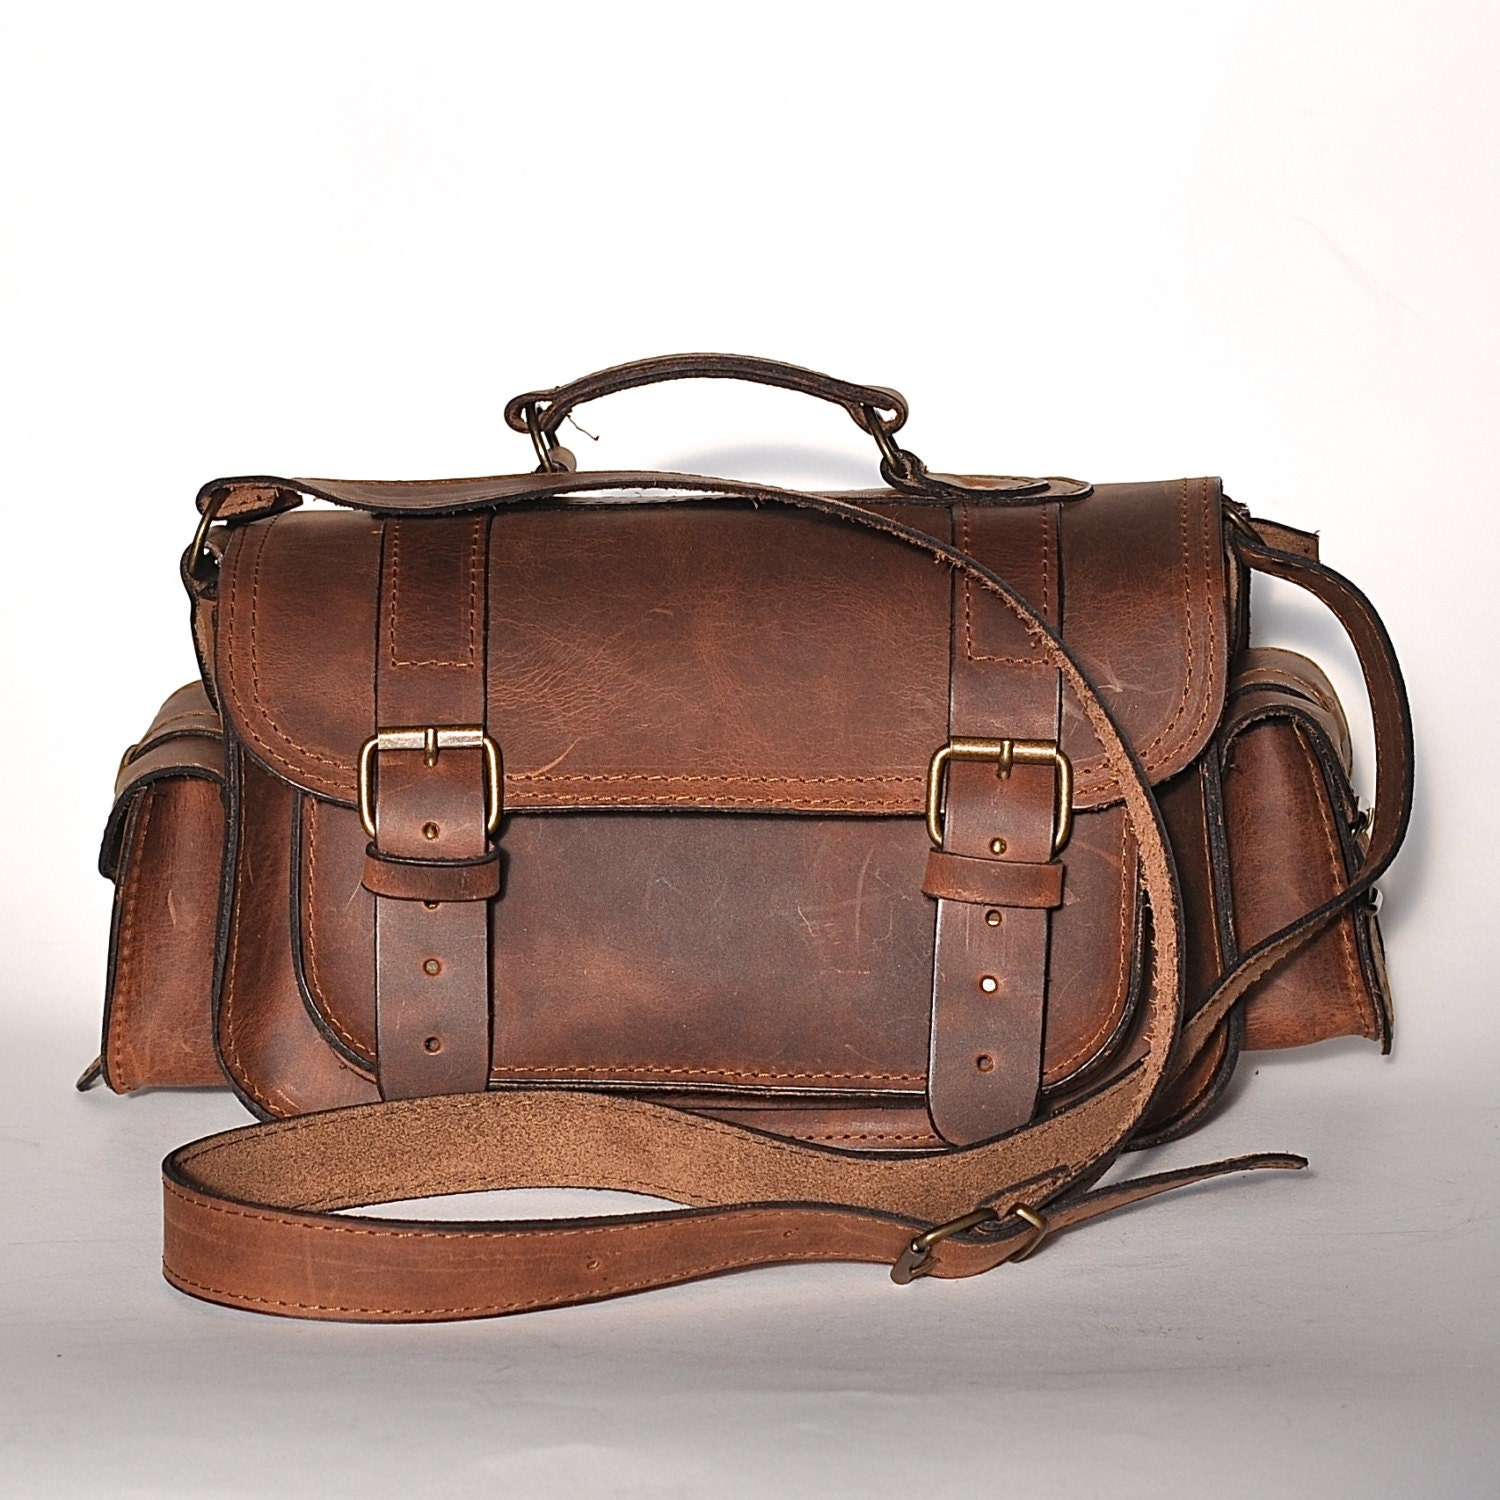 Medium size leather camera bag / Women/Men chestnut leather